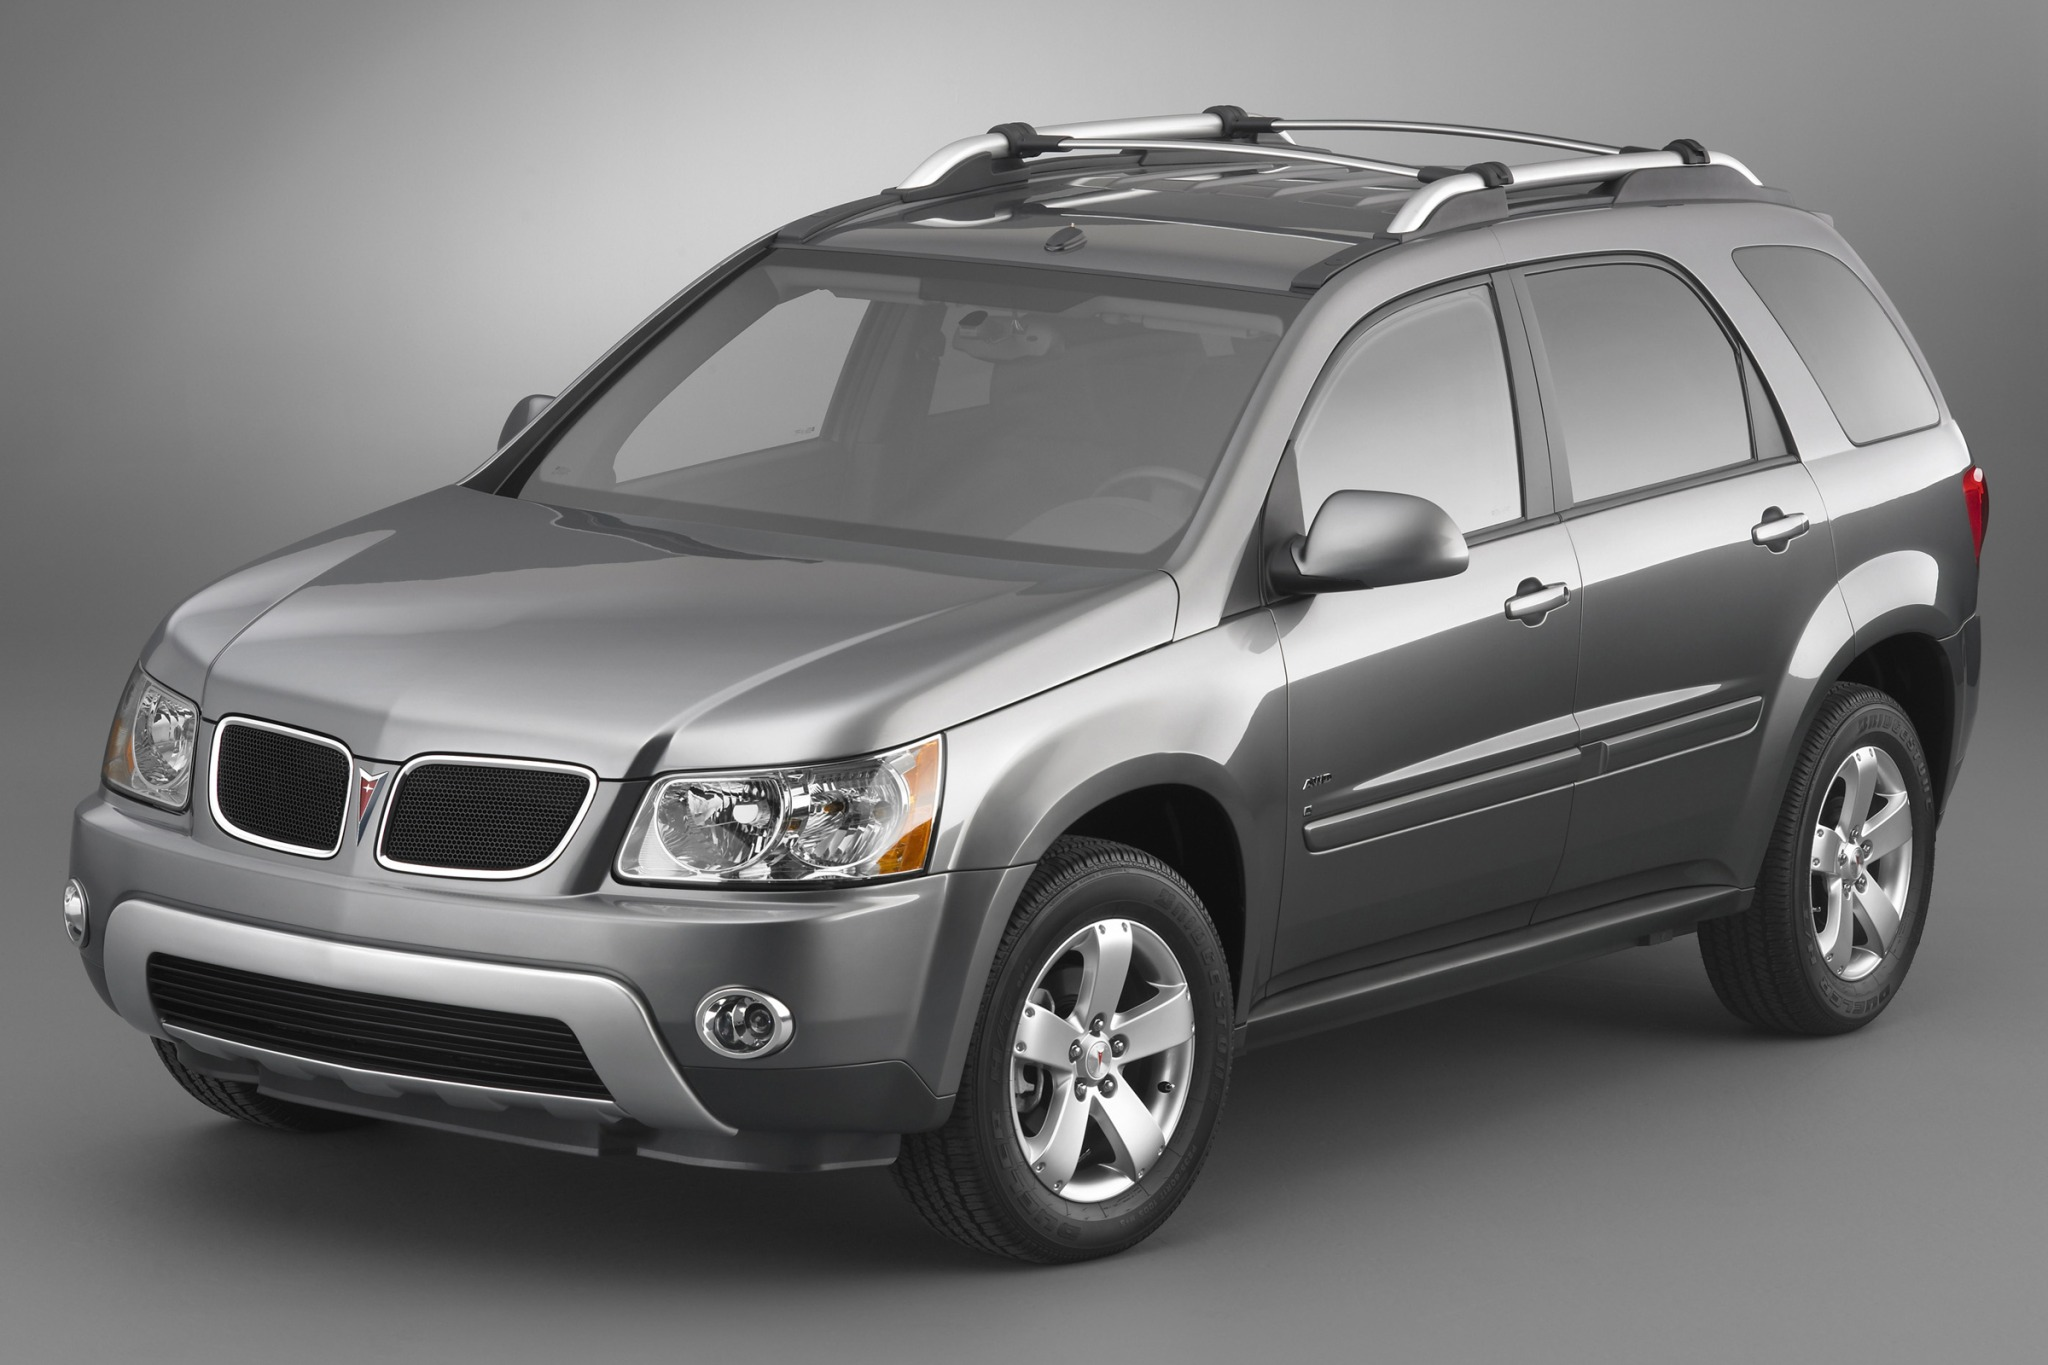 2007 Pontiac Torrent 4dr  interior #2